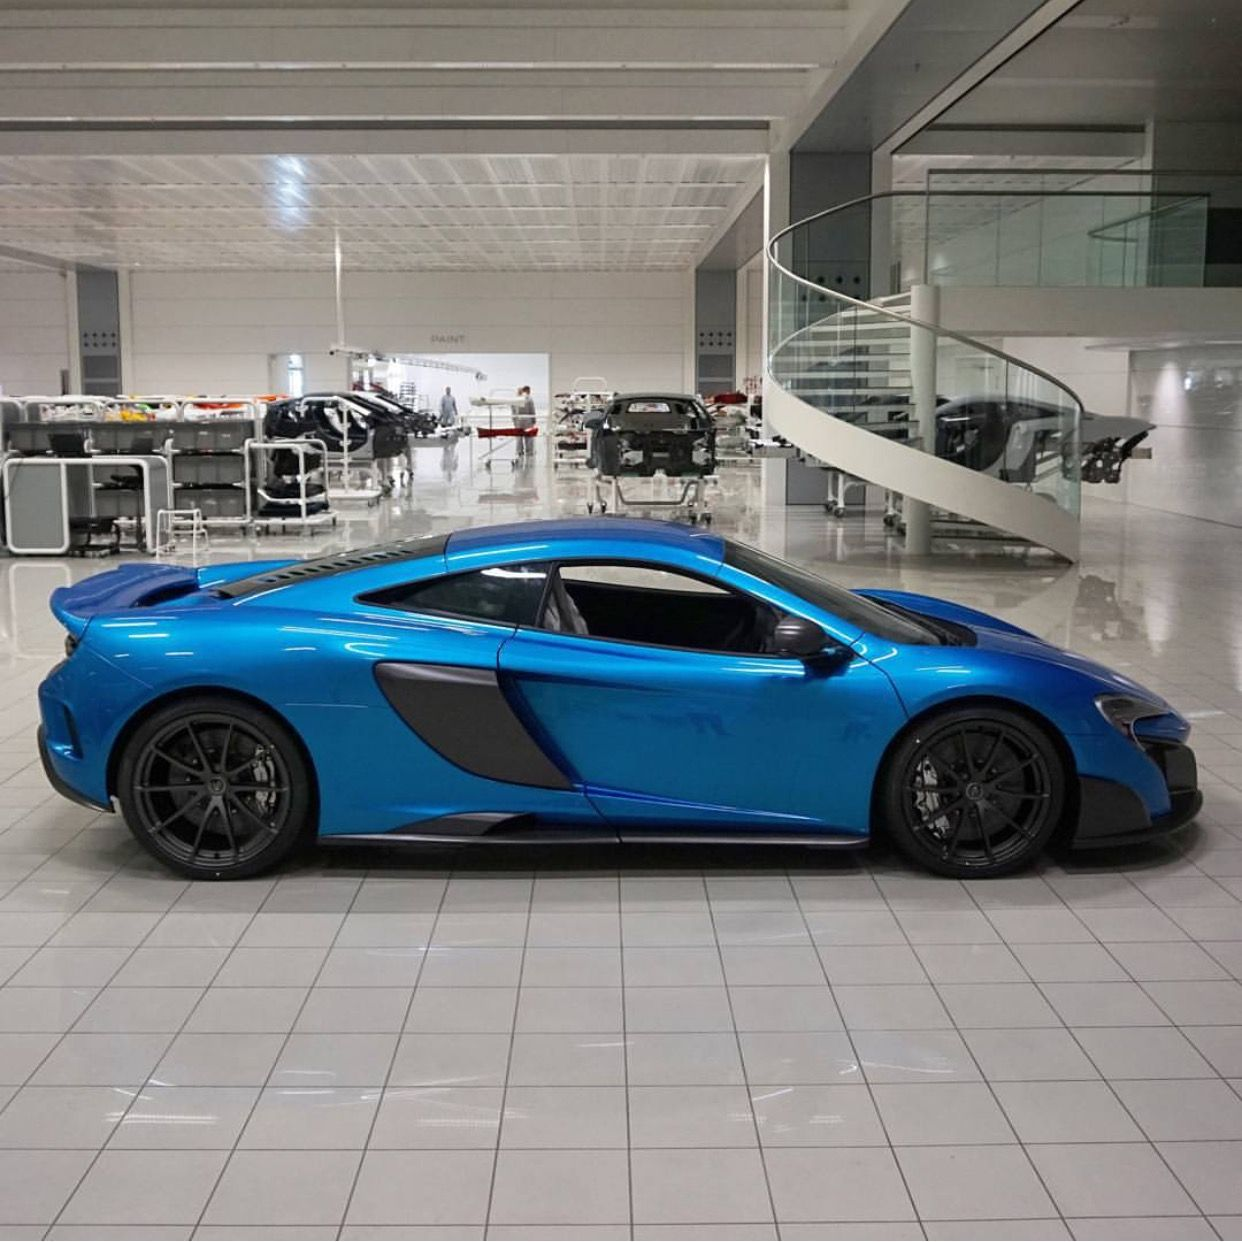 Mclaren 675lt Painted In Cerulean Blue Photo Taken By Shmee150 On Instagram He Also The Owner Of The Car Mclaren Cars Mclaren 675lt Mclaren